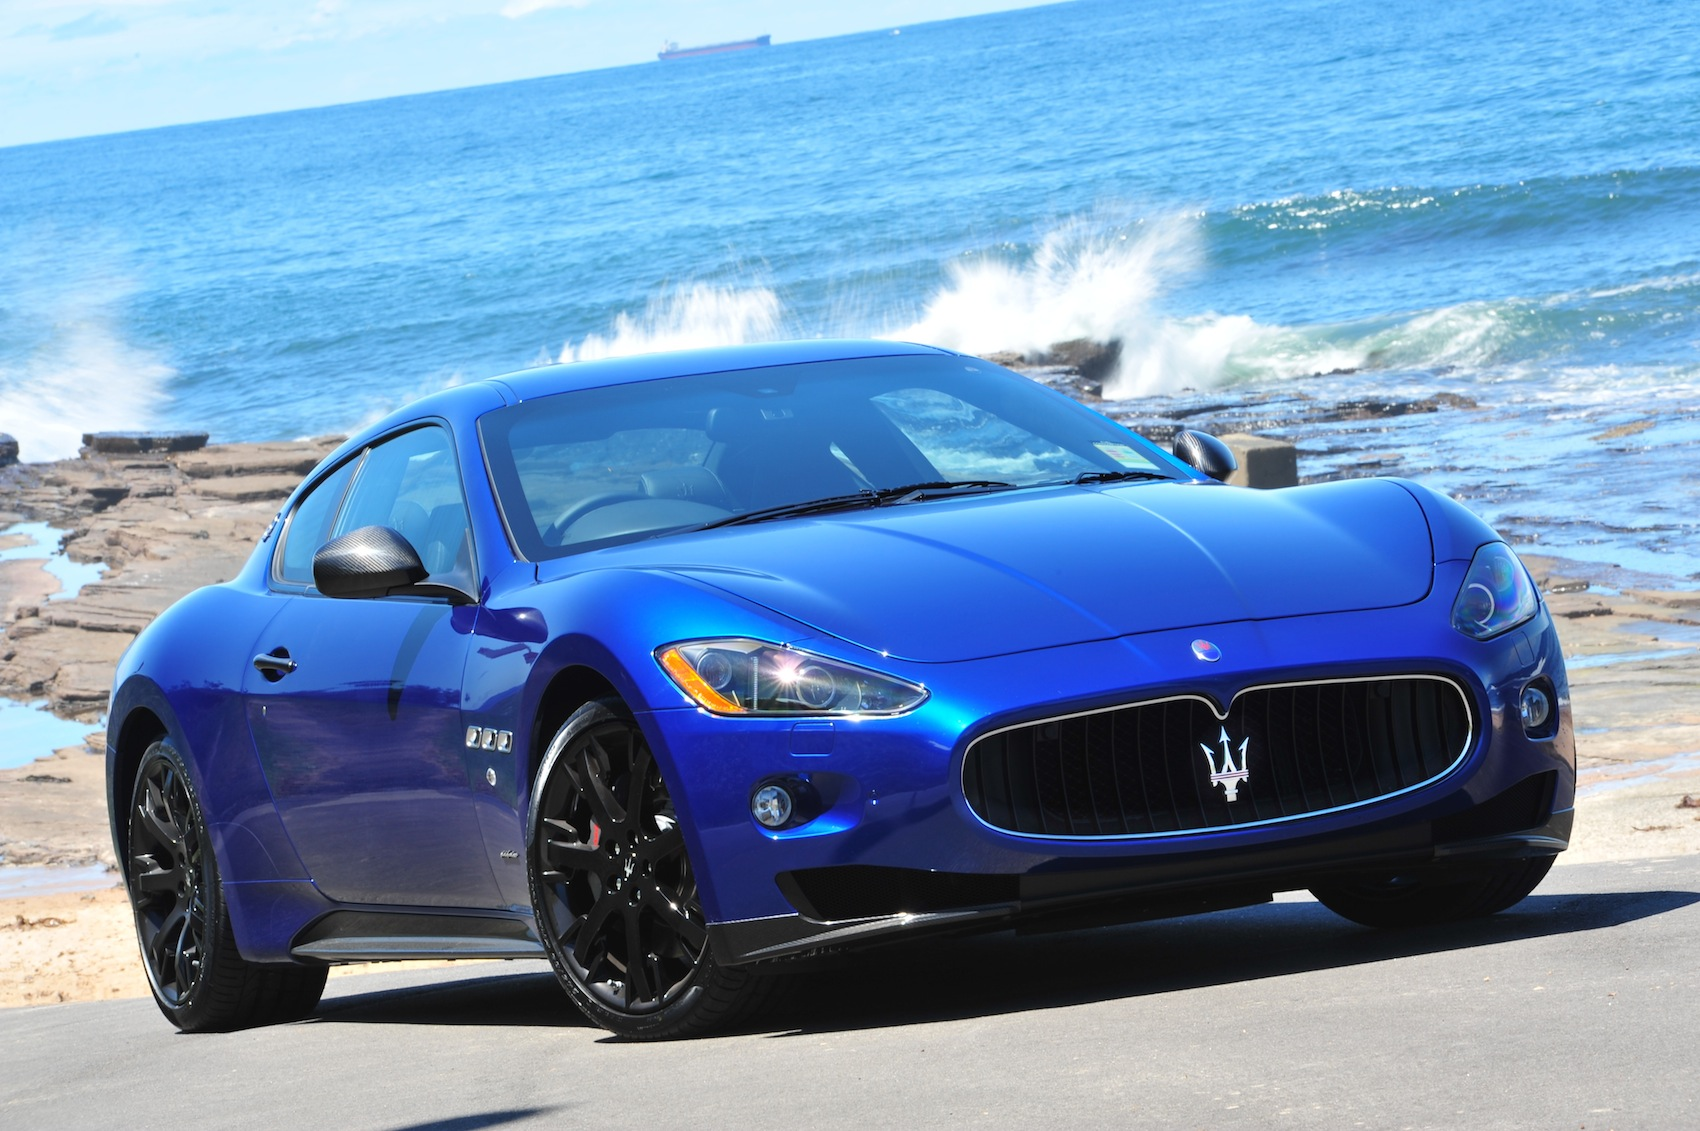 2012 maserati granturismo s mc shift more power less fuel photos 1 of 4. Black Bedroom Furniture Sets. Home Design Ideas